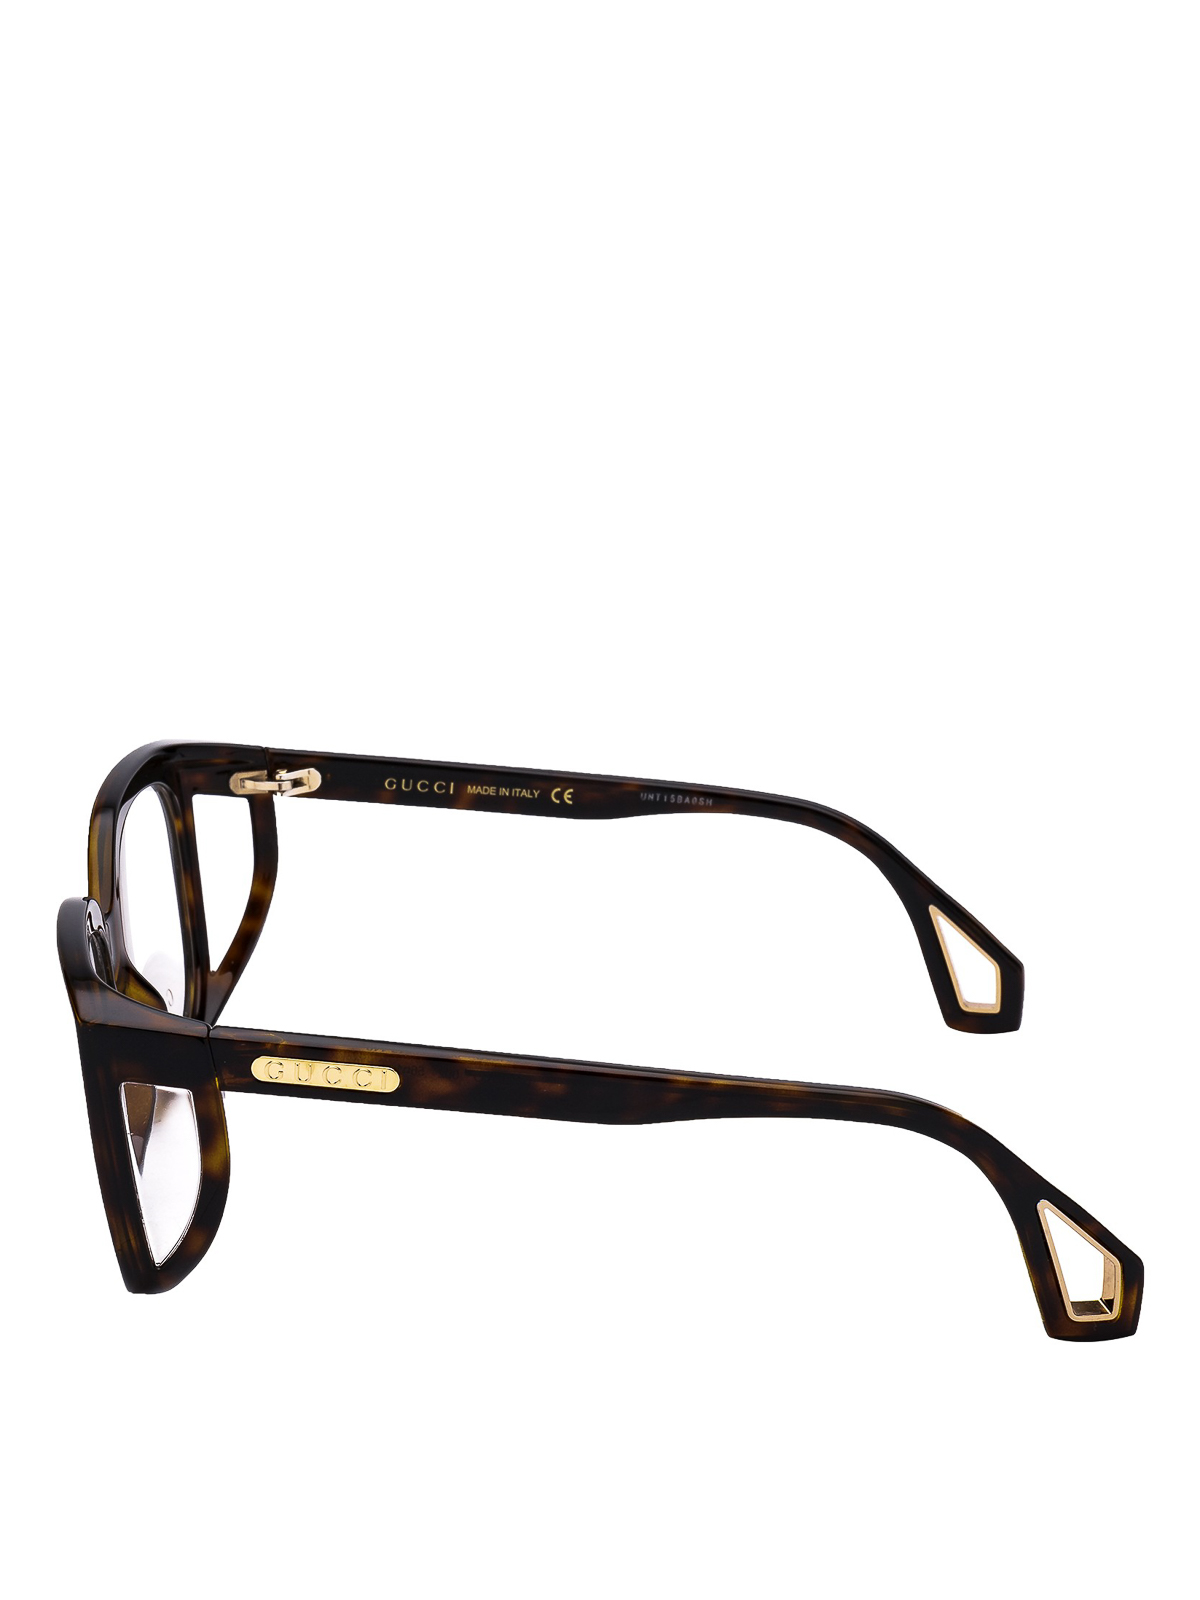 96dd4de341f GUCCI  Glasses online - Square framed havana glasses with blinkers